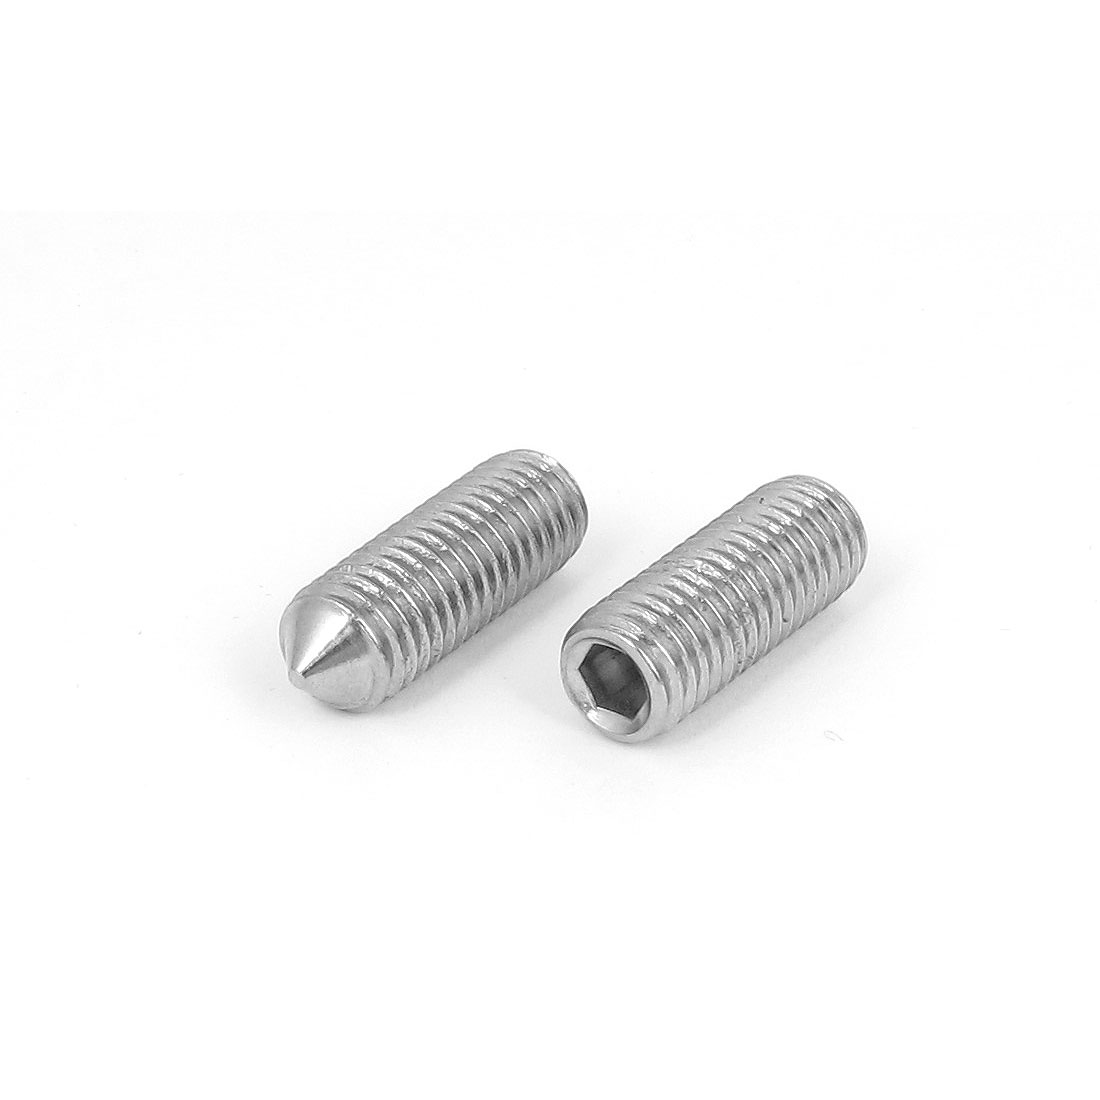 M12x35mm 1.75mm Pitch 304 Stainless Steel Cone Point Hex Socket Grub Screws 2pcs